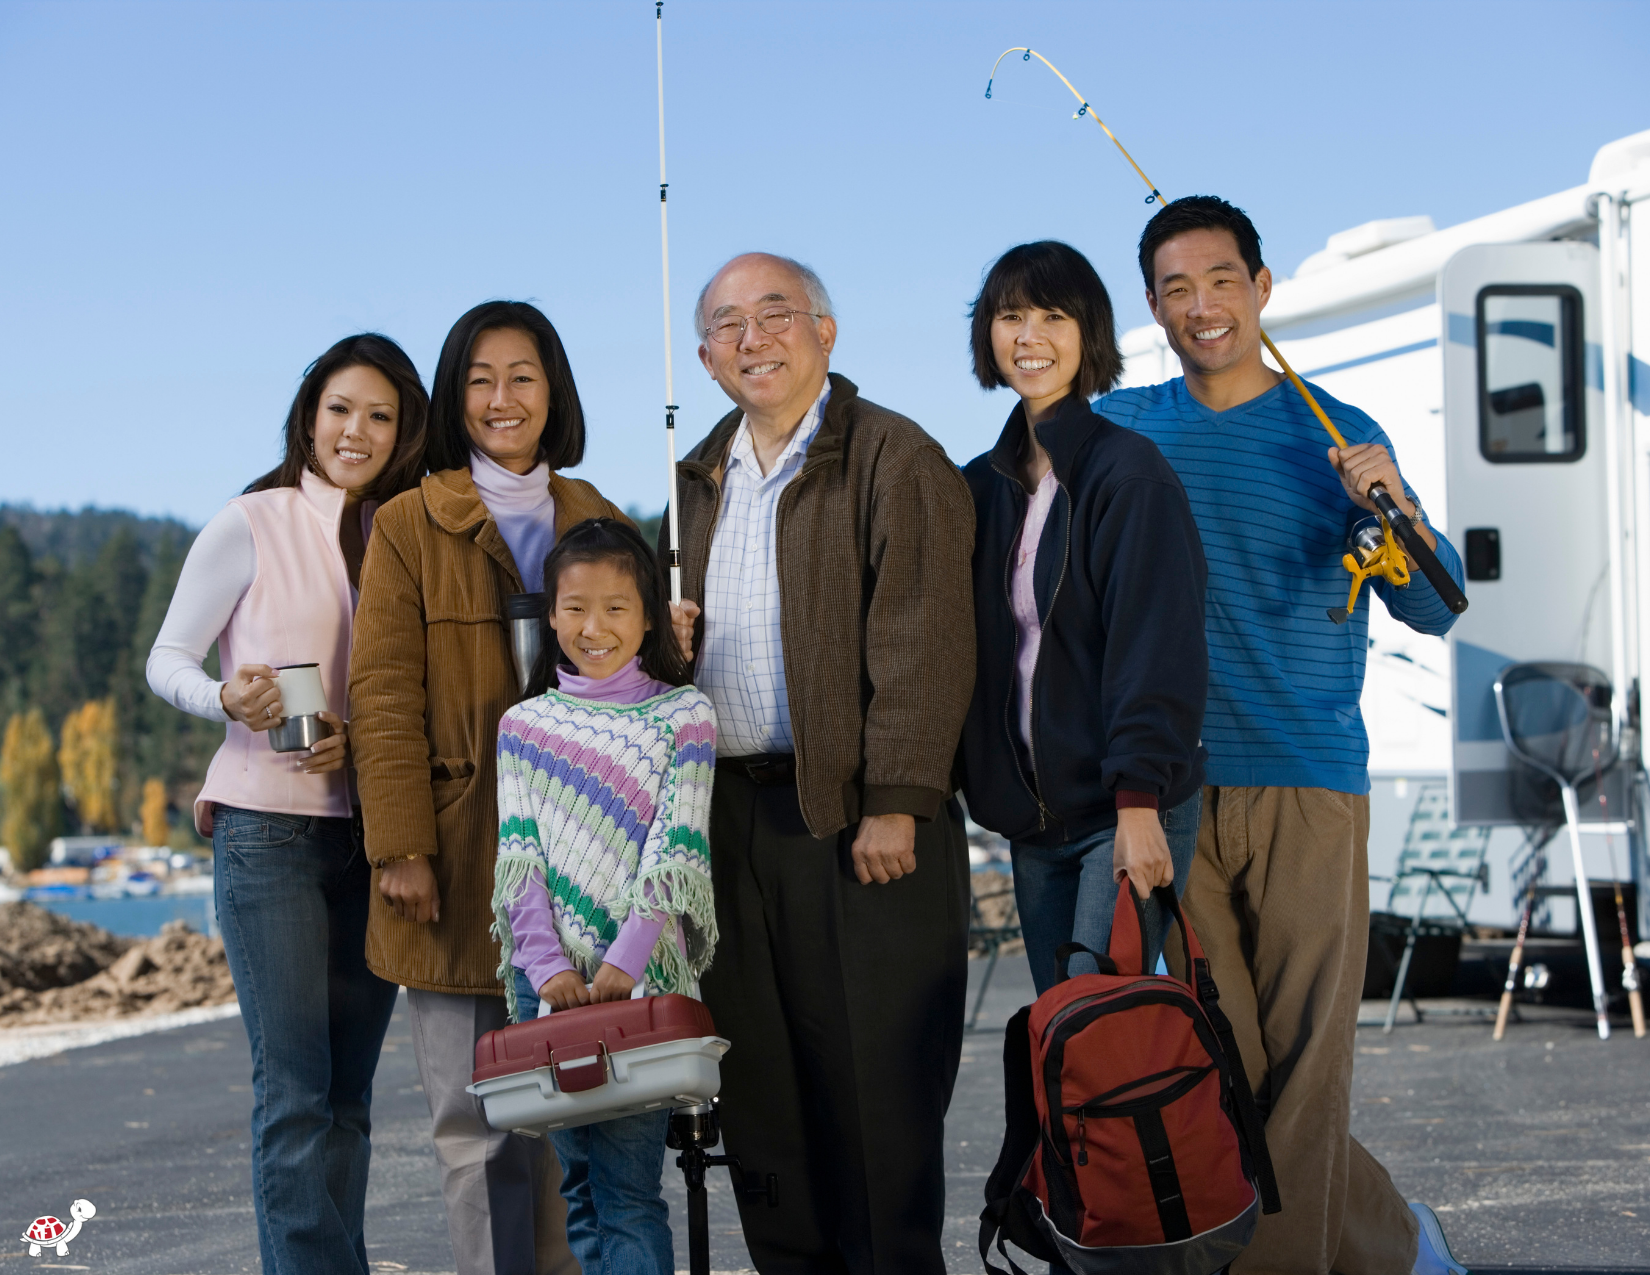 muti-generational vacation ideas